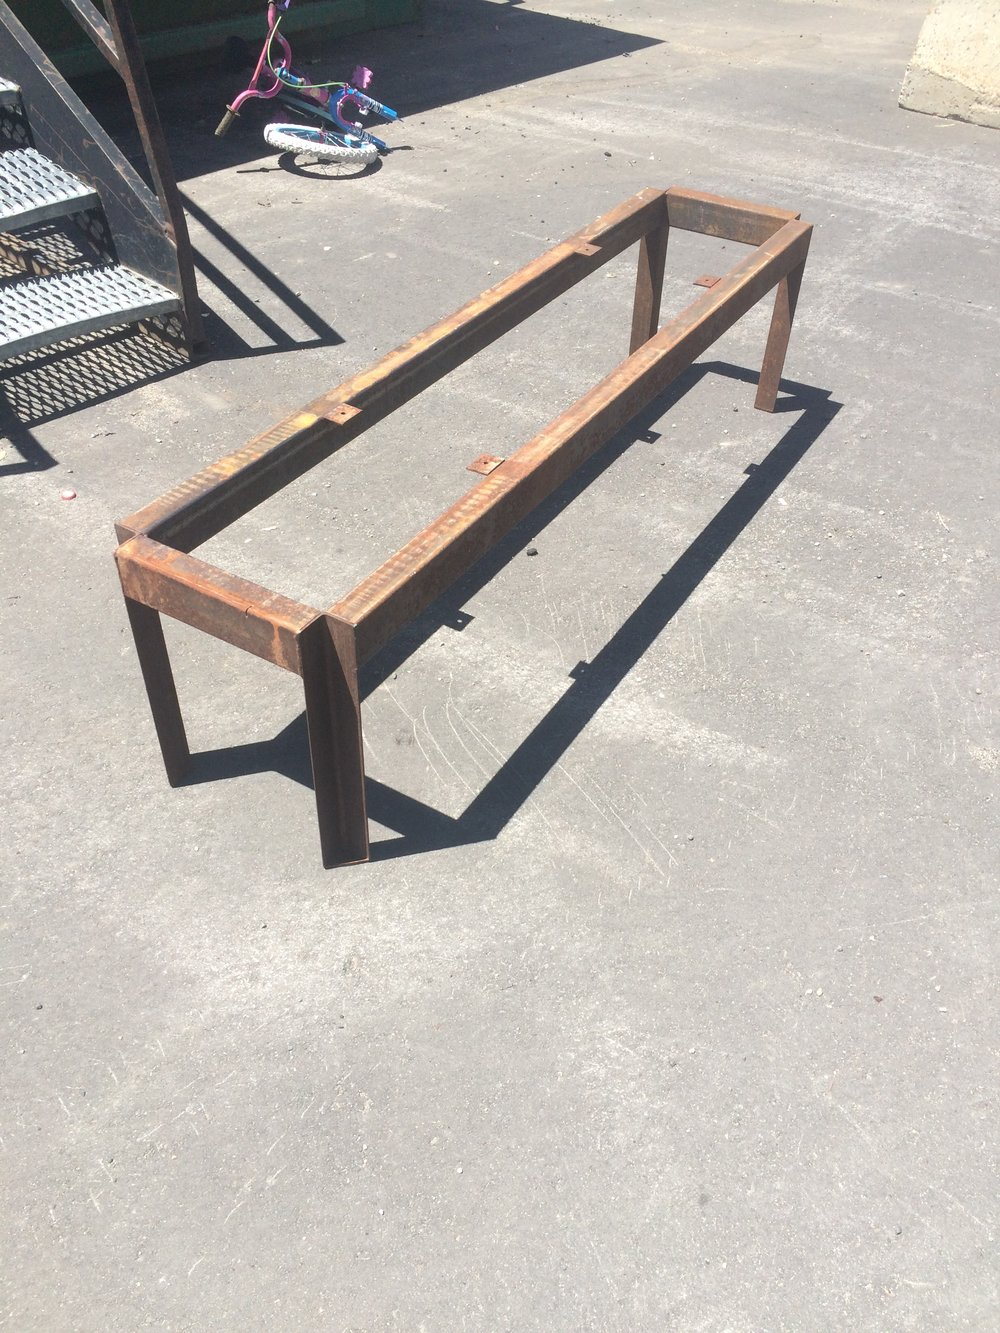 salvaged bench from the recycling center